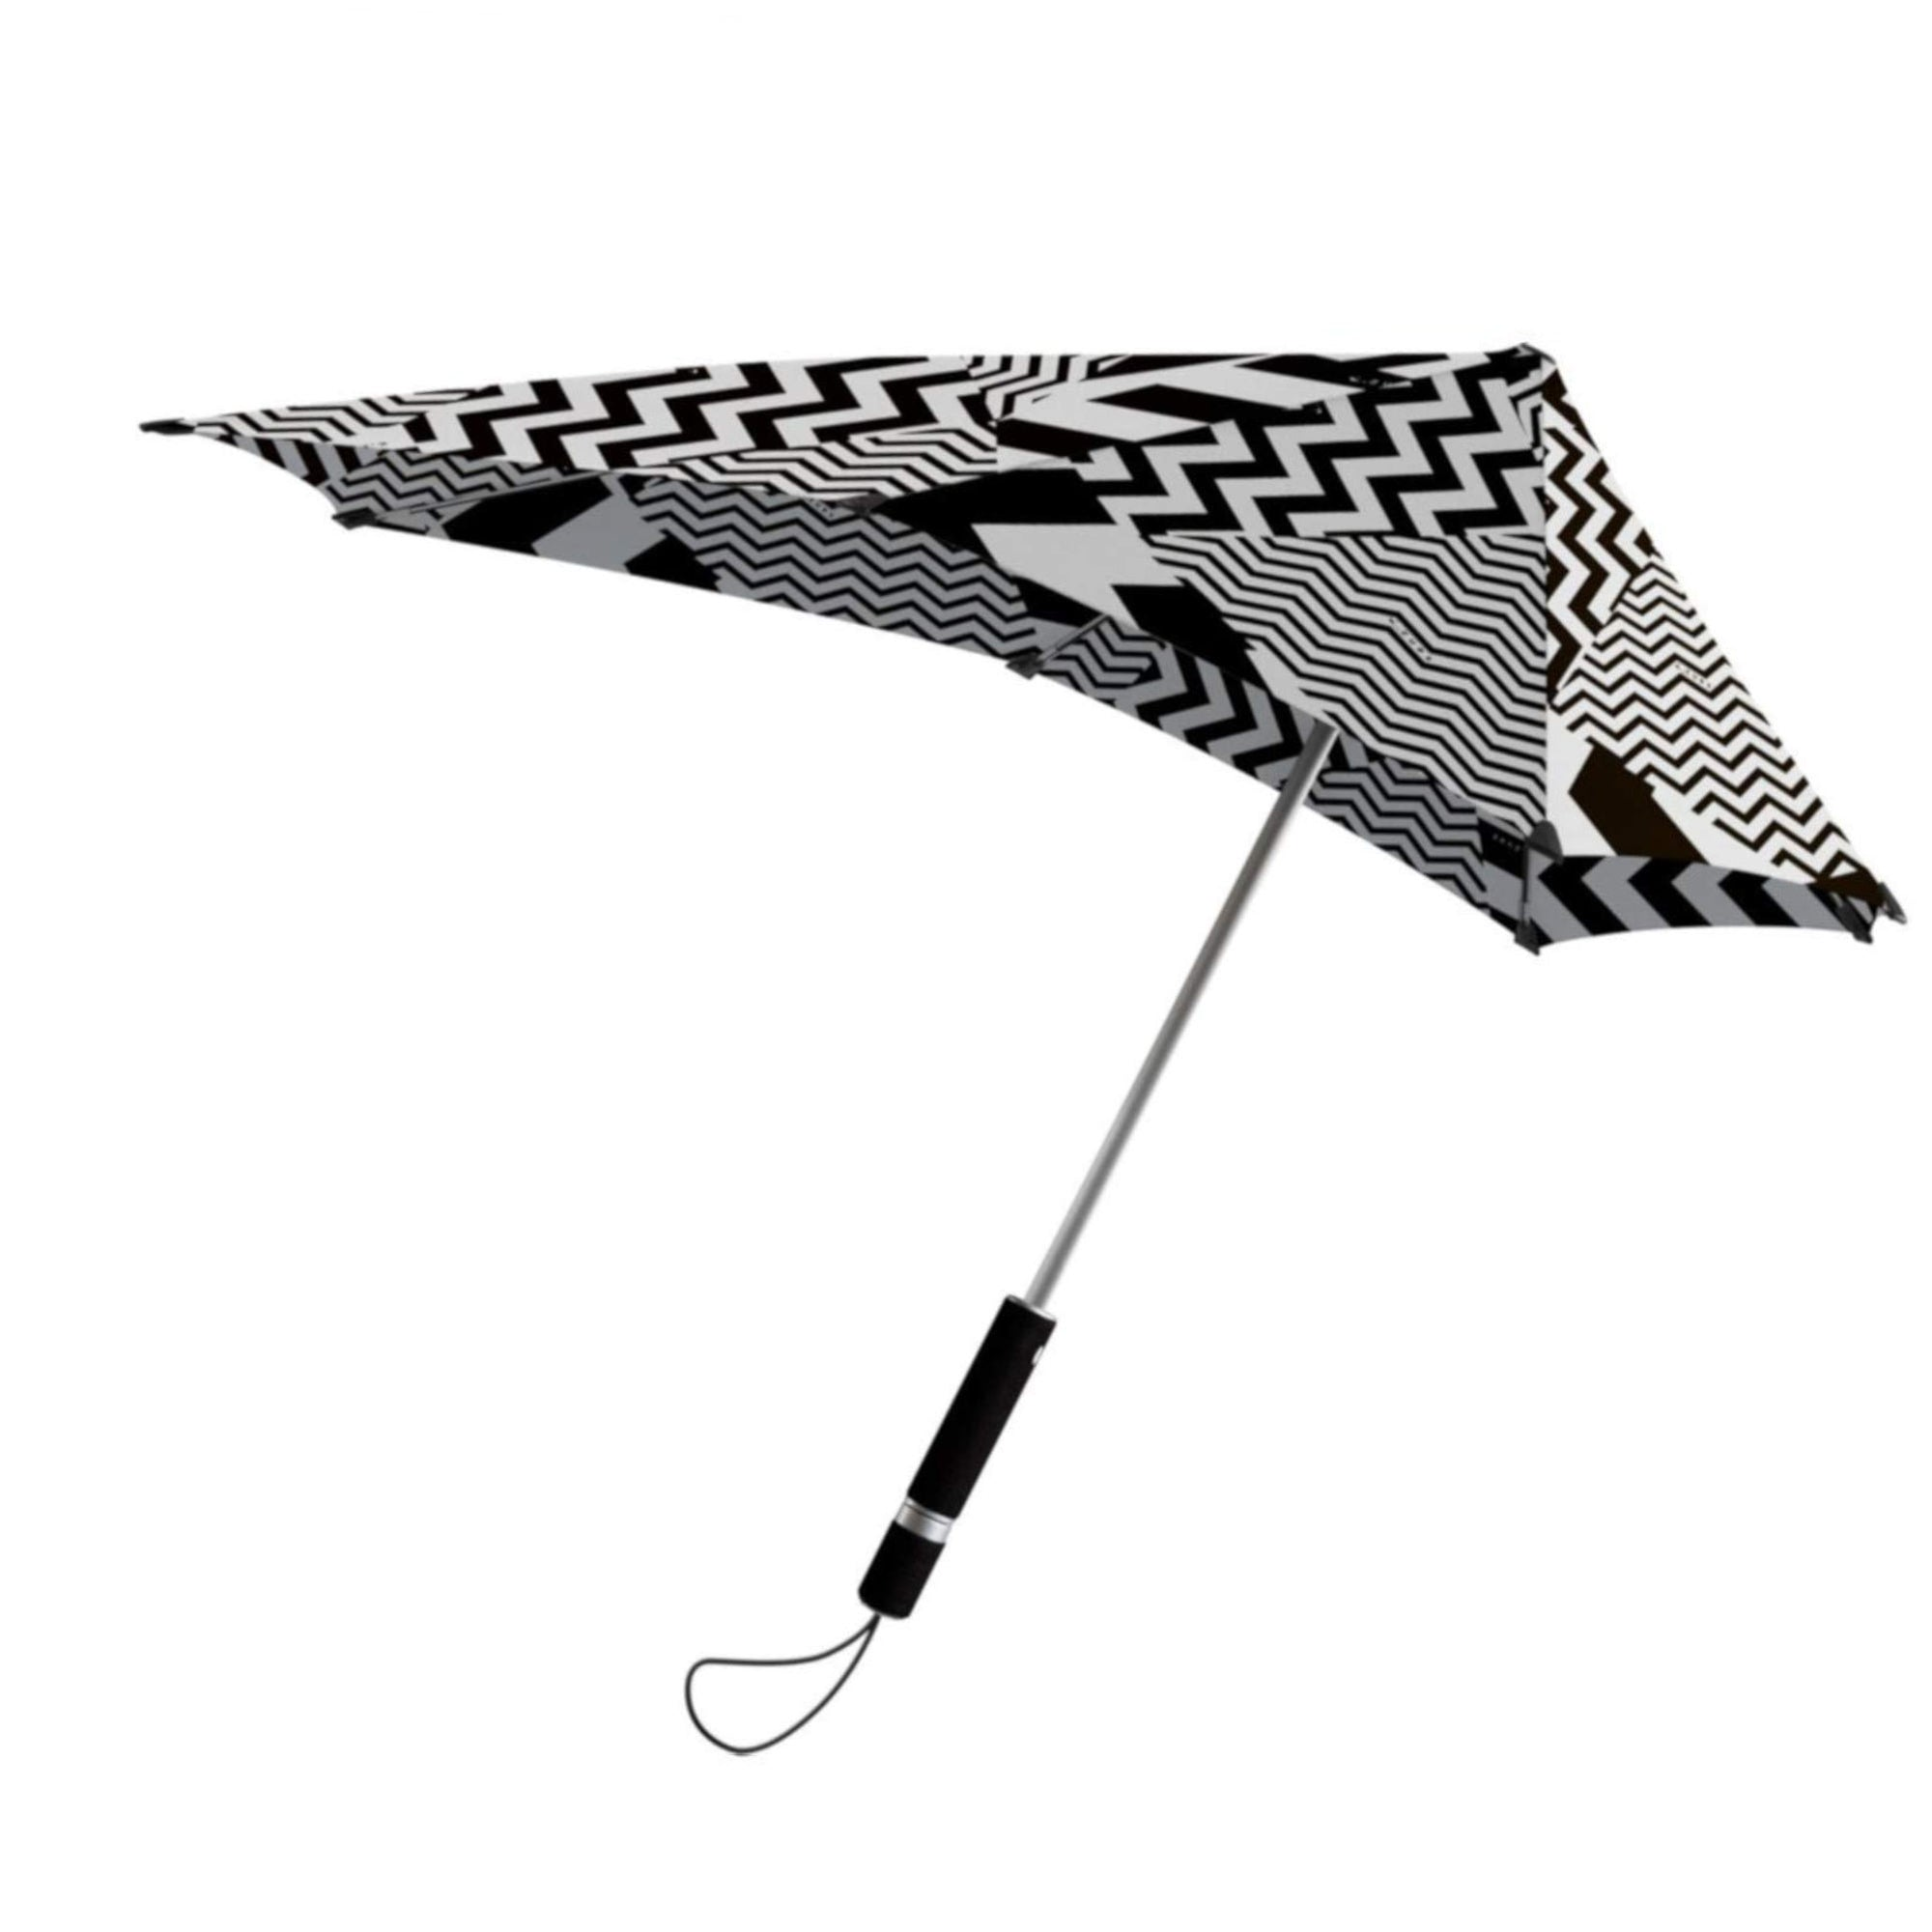 Senz° Original storm umbrella, dazzle me